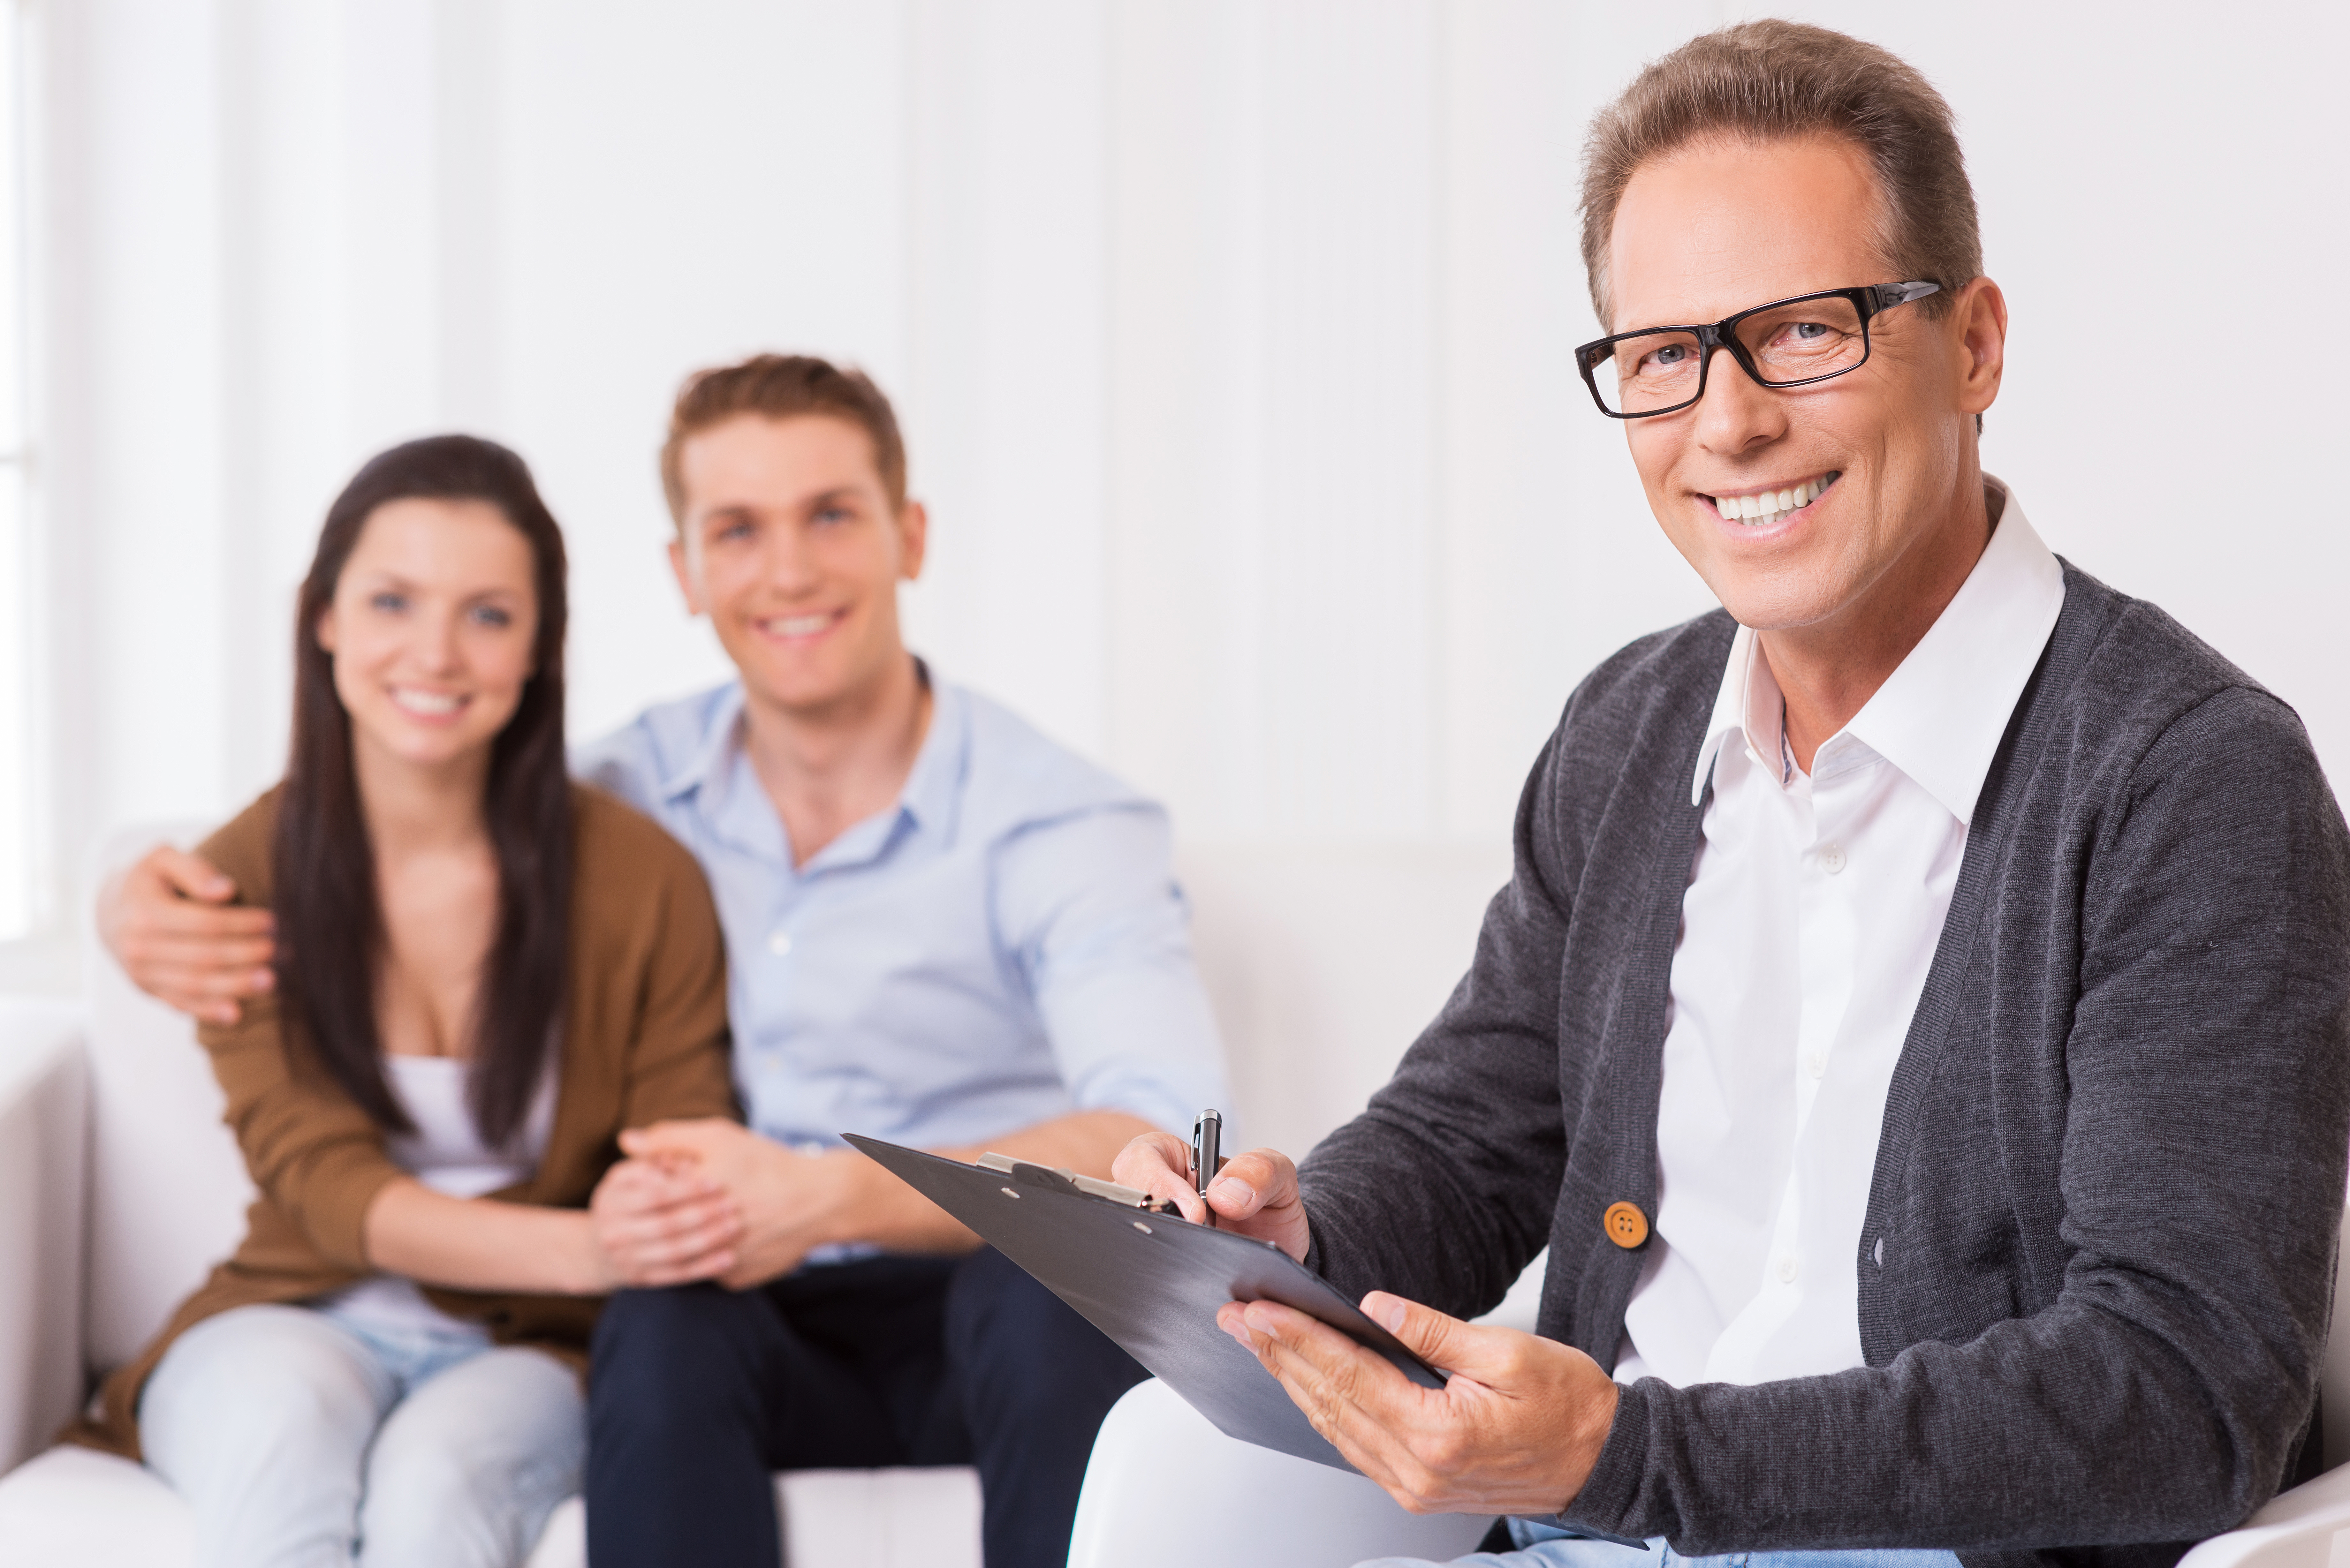 prolotherapy in San Diego